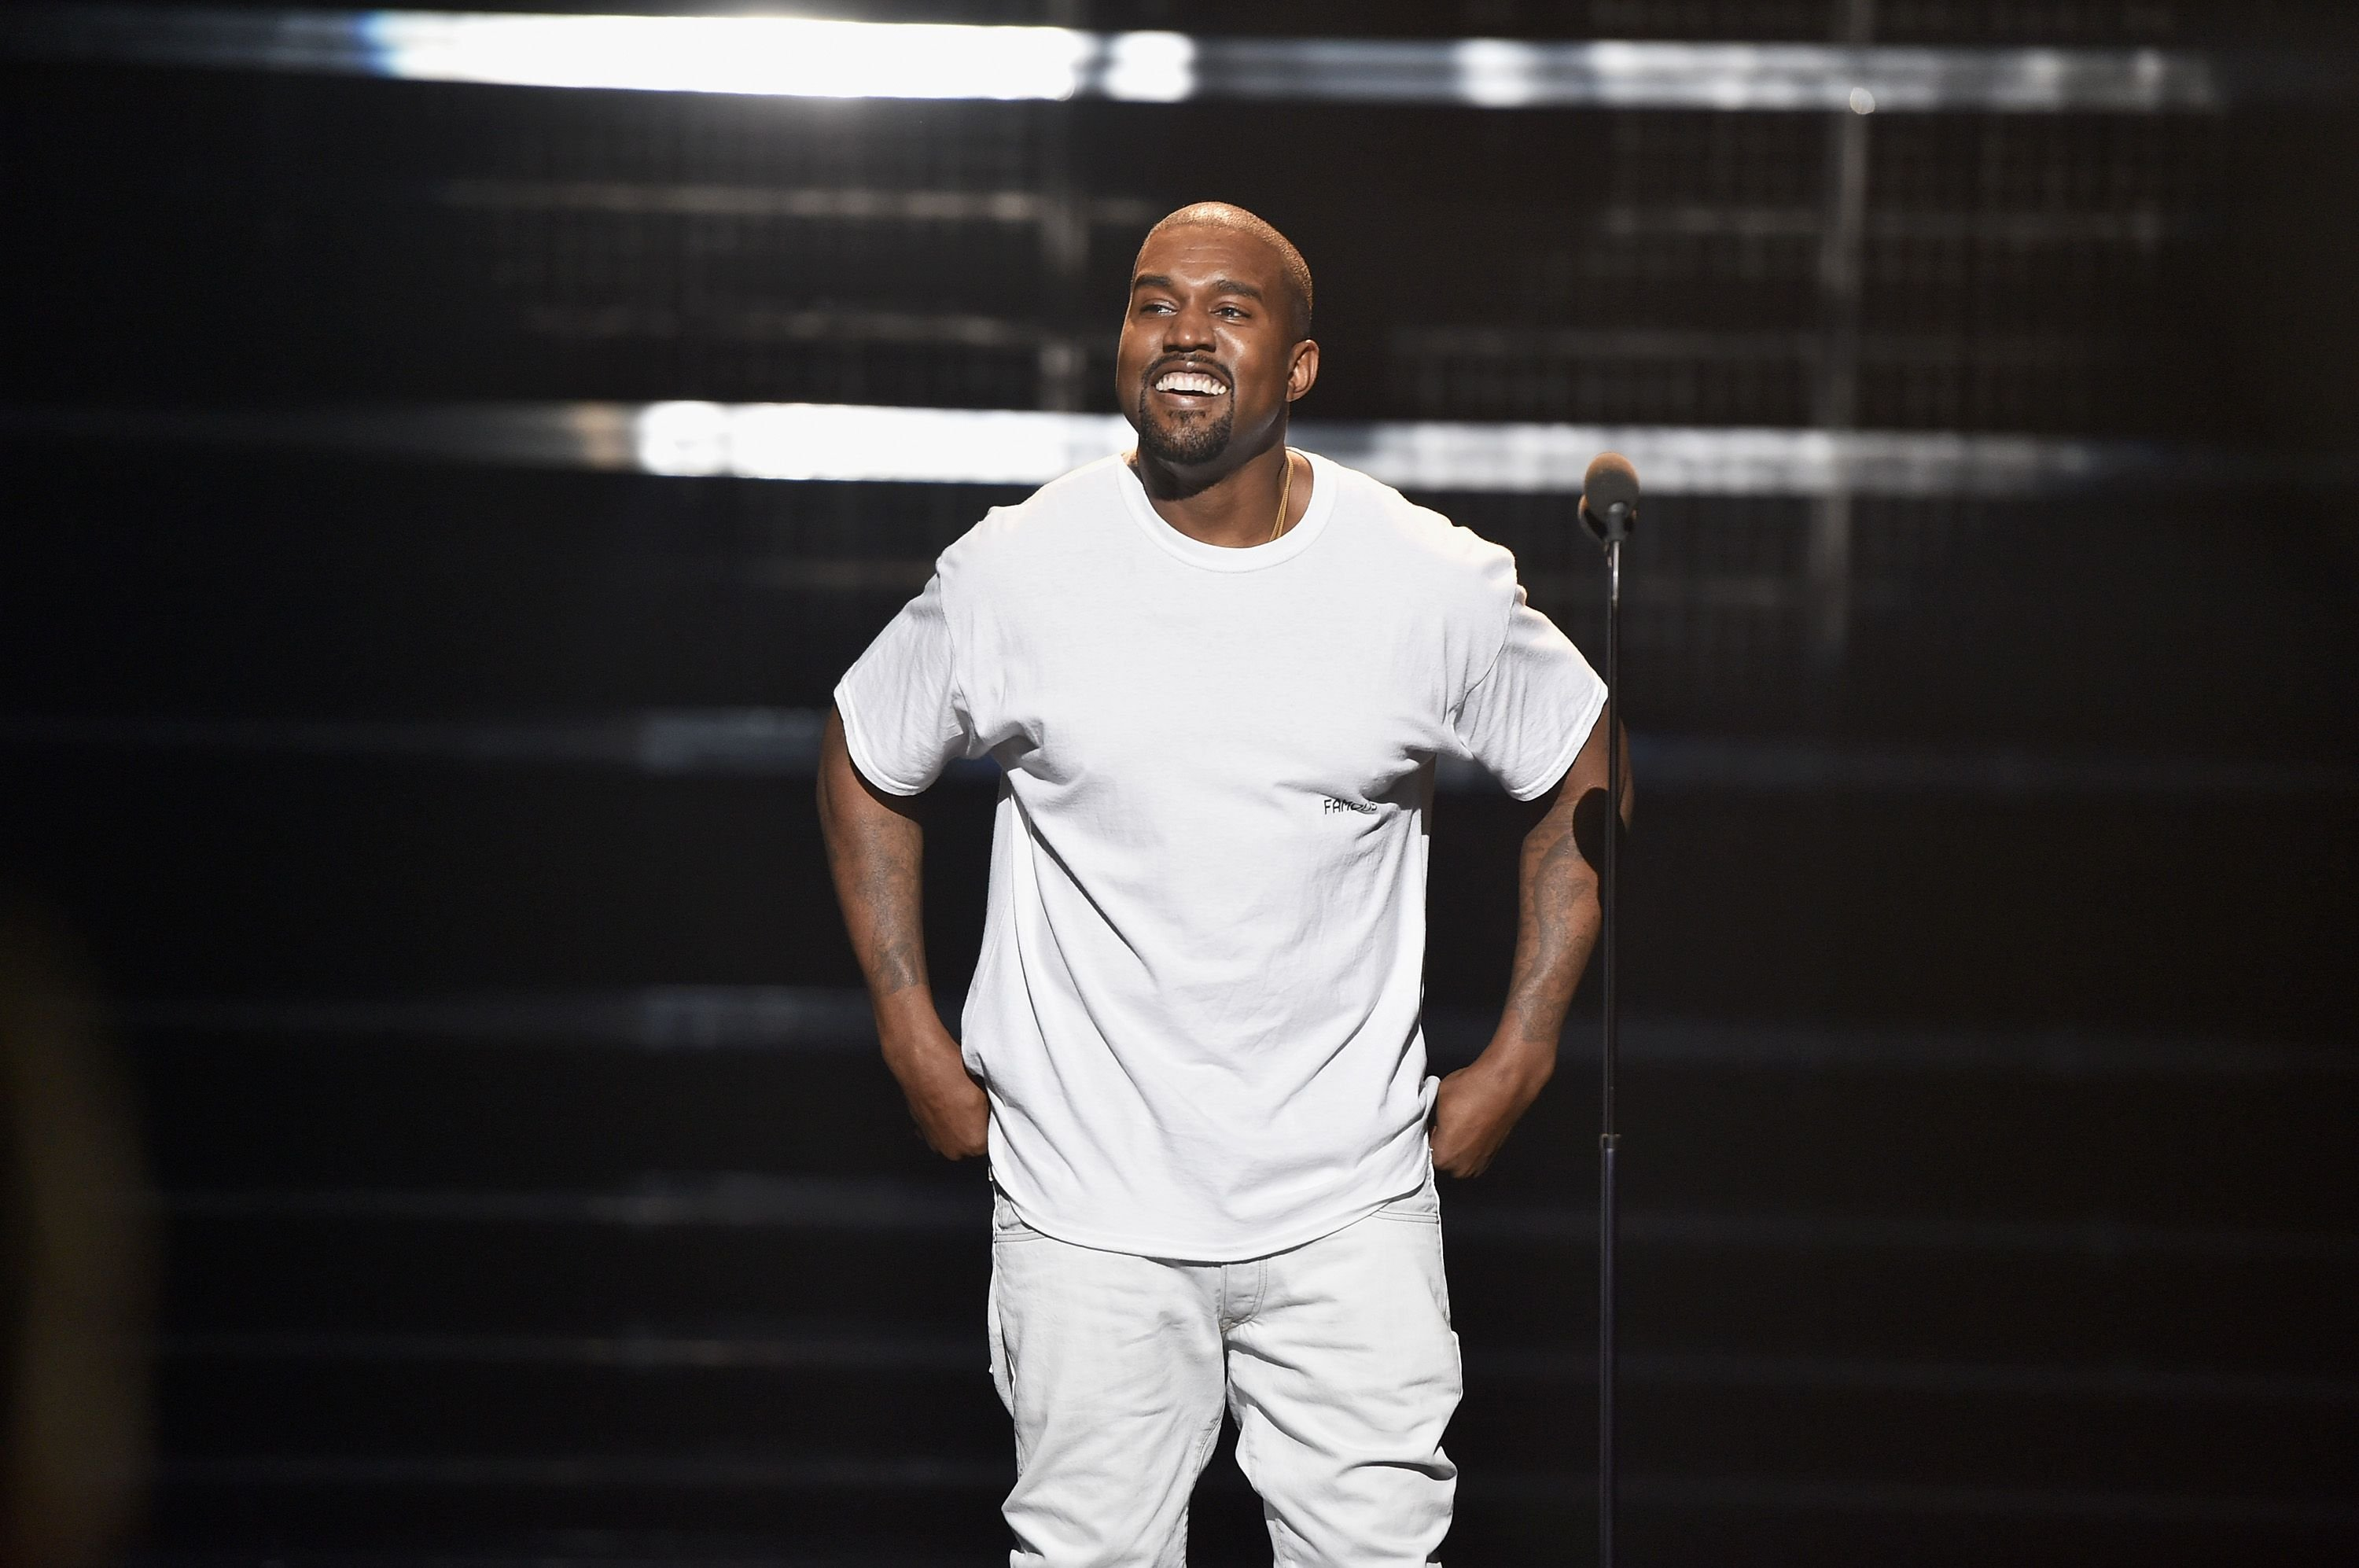 Kanye West performing on stage at the 2016 MTV Music Video Awards at Madison Square Gareden in New York City | Photo: John Shearer/Getty Images for MTV.com